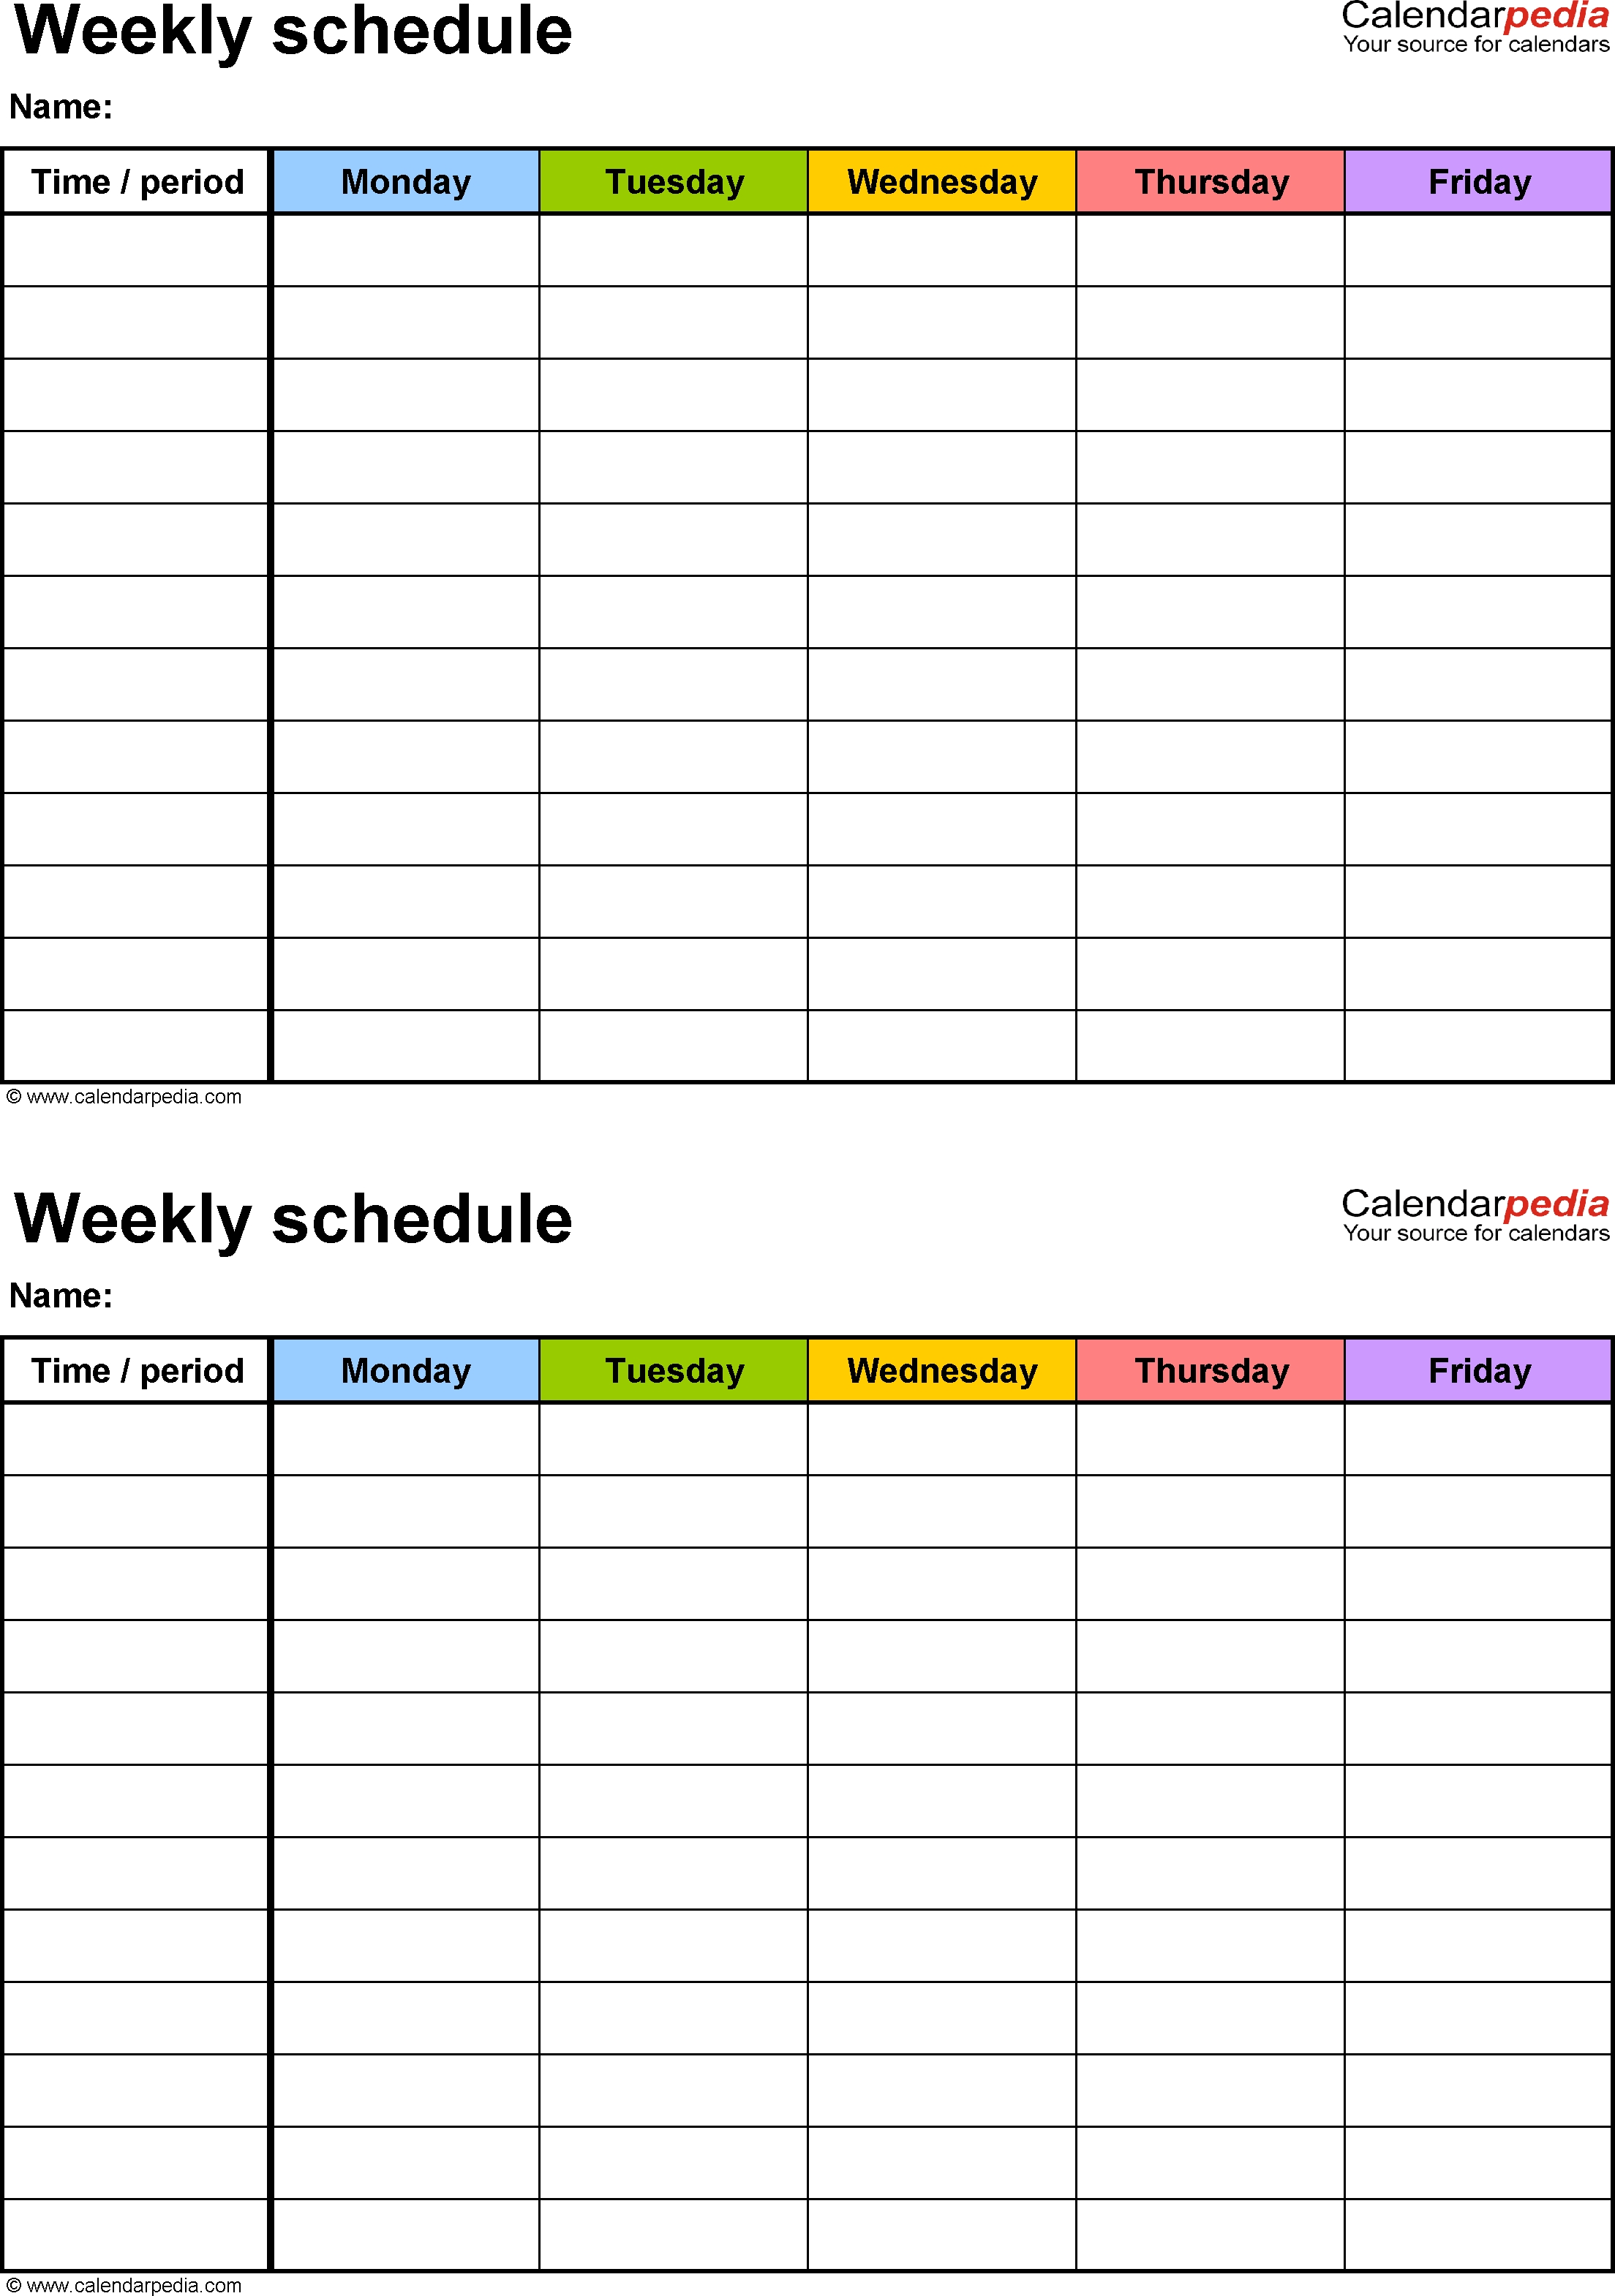 Weekly Schedule Template For Pdf Version 3: 2 Schedules On